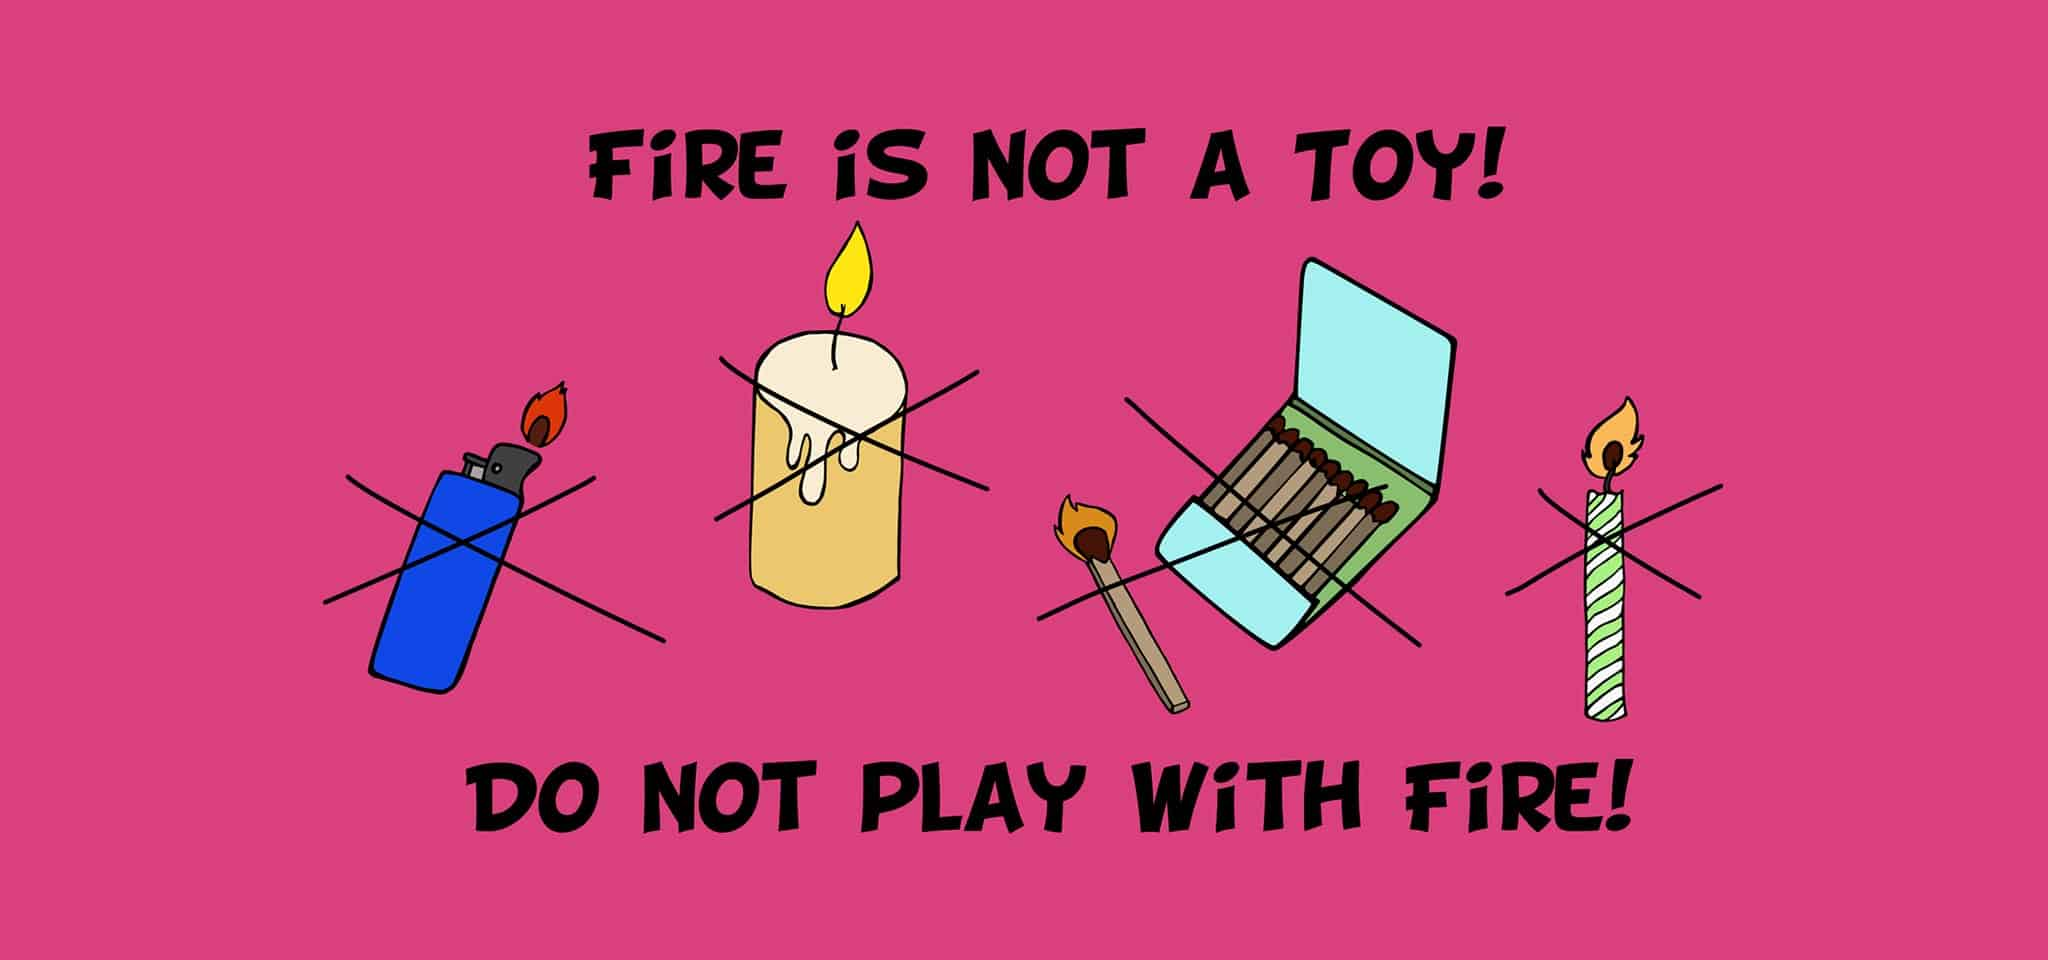 Be #FDNYSmart about Not Playing with Fire